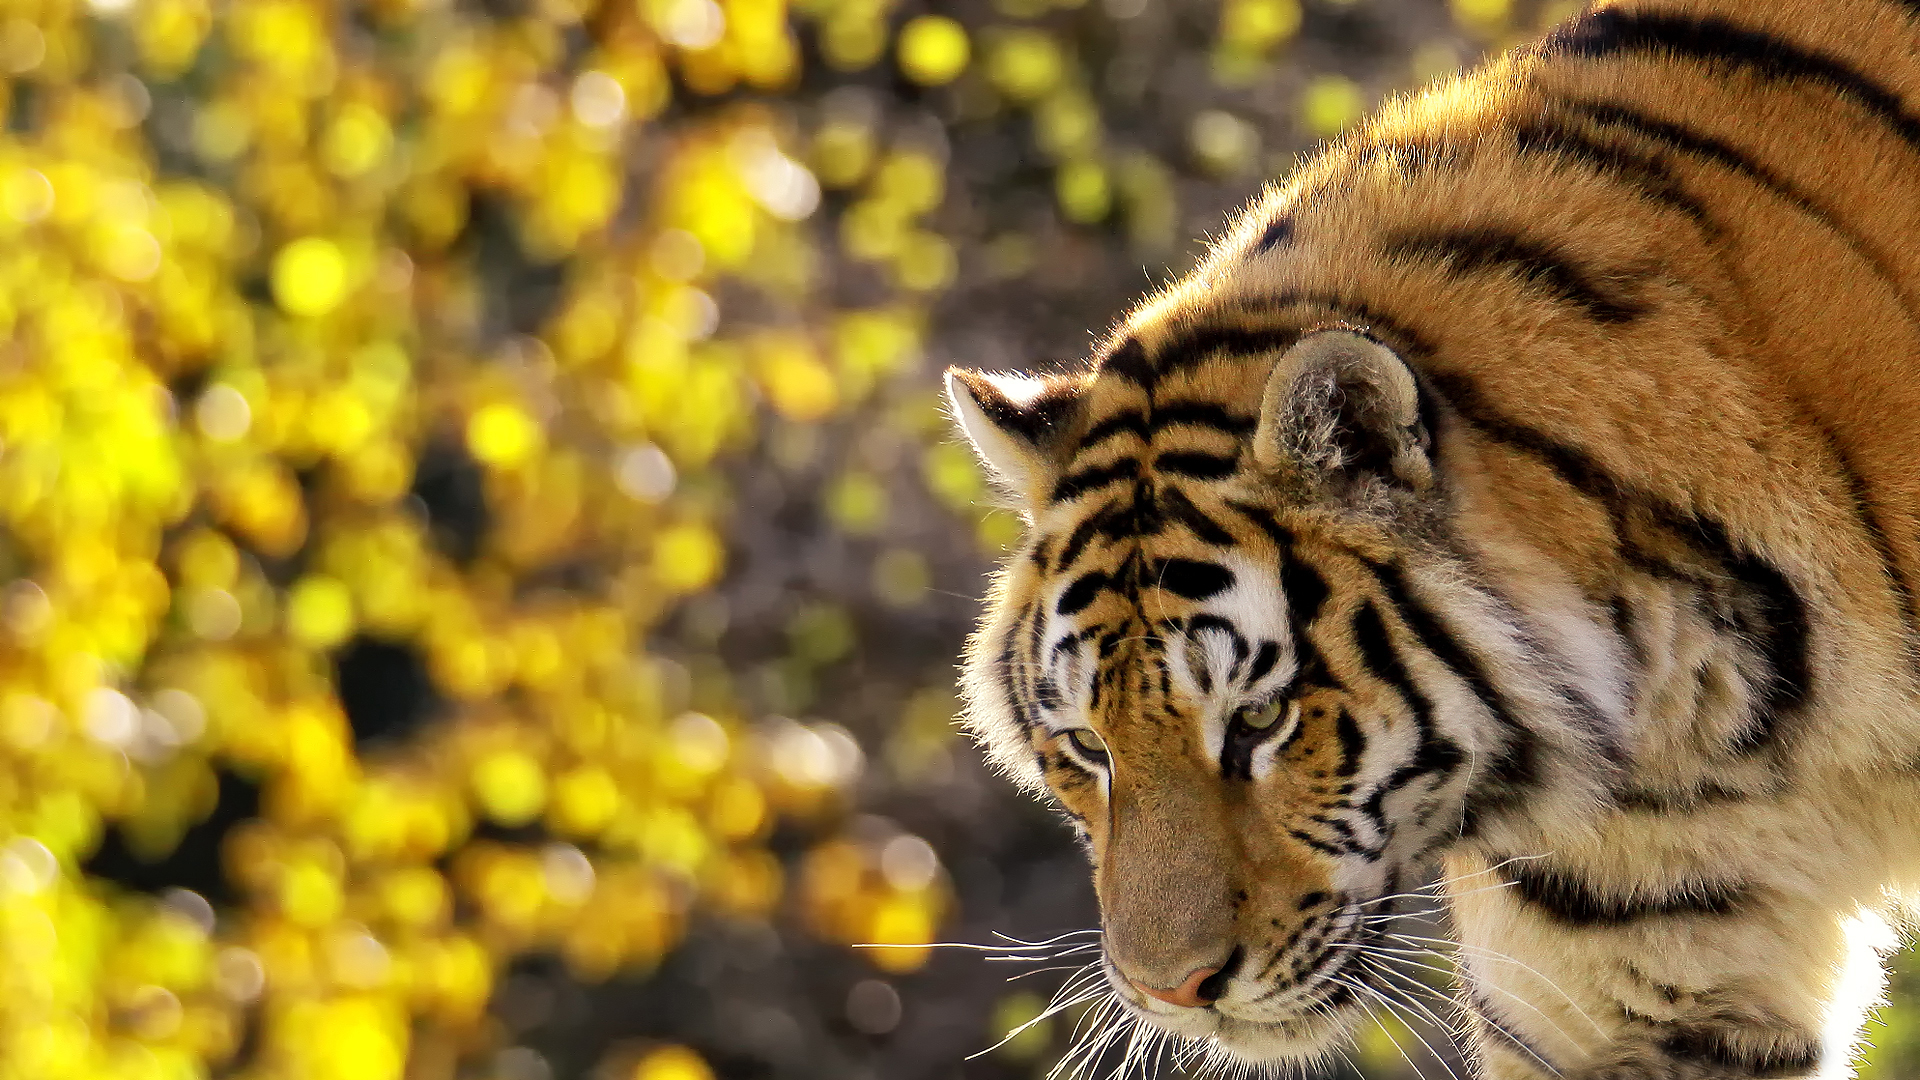 ultra high definition wallpapers tigers - photo #9